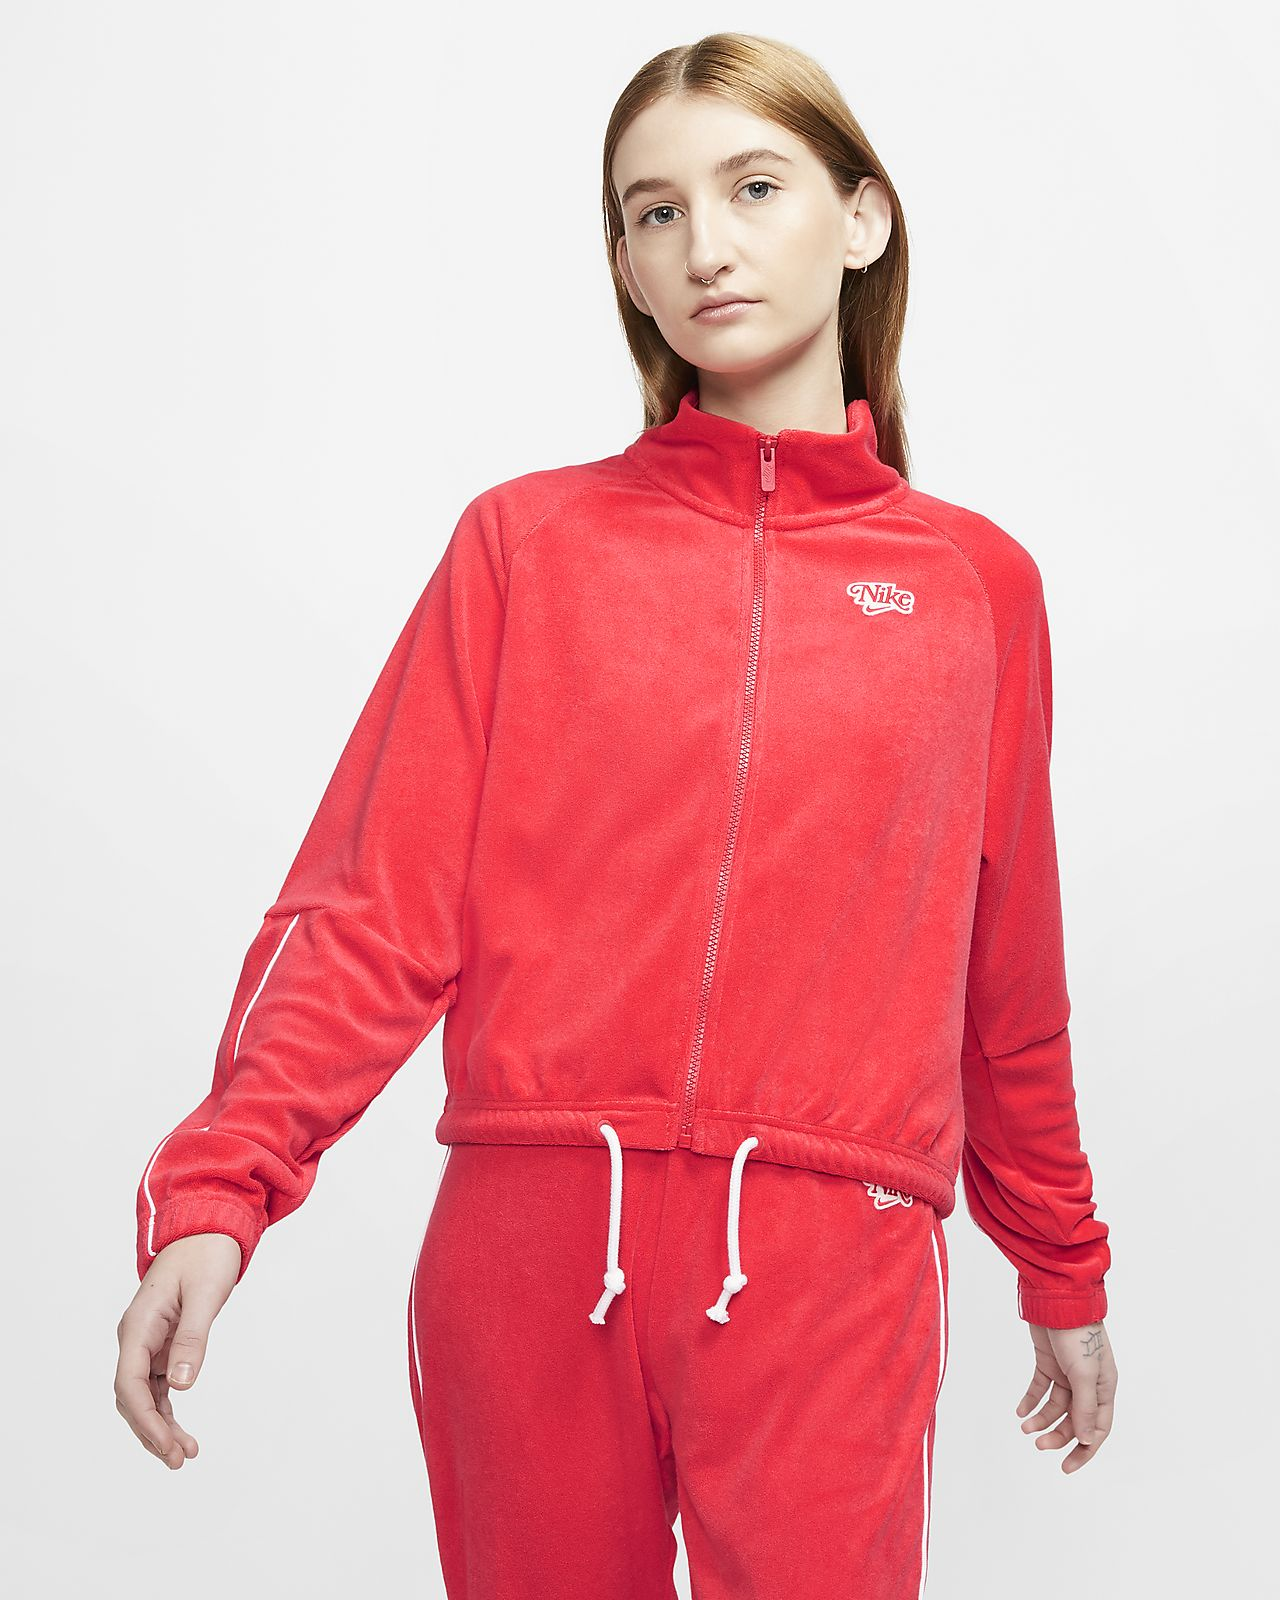 Nike Sportswear Women's Full-Zip Jacket